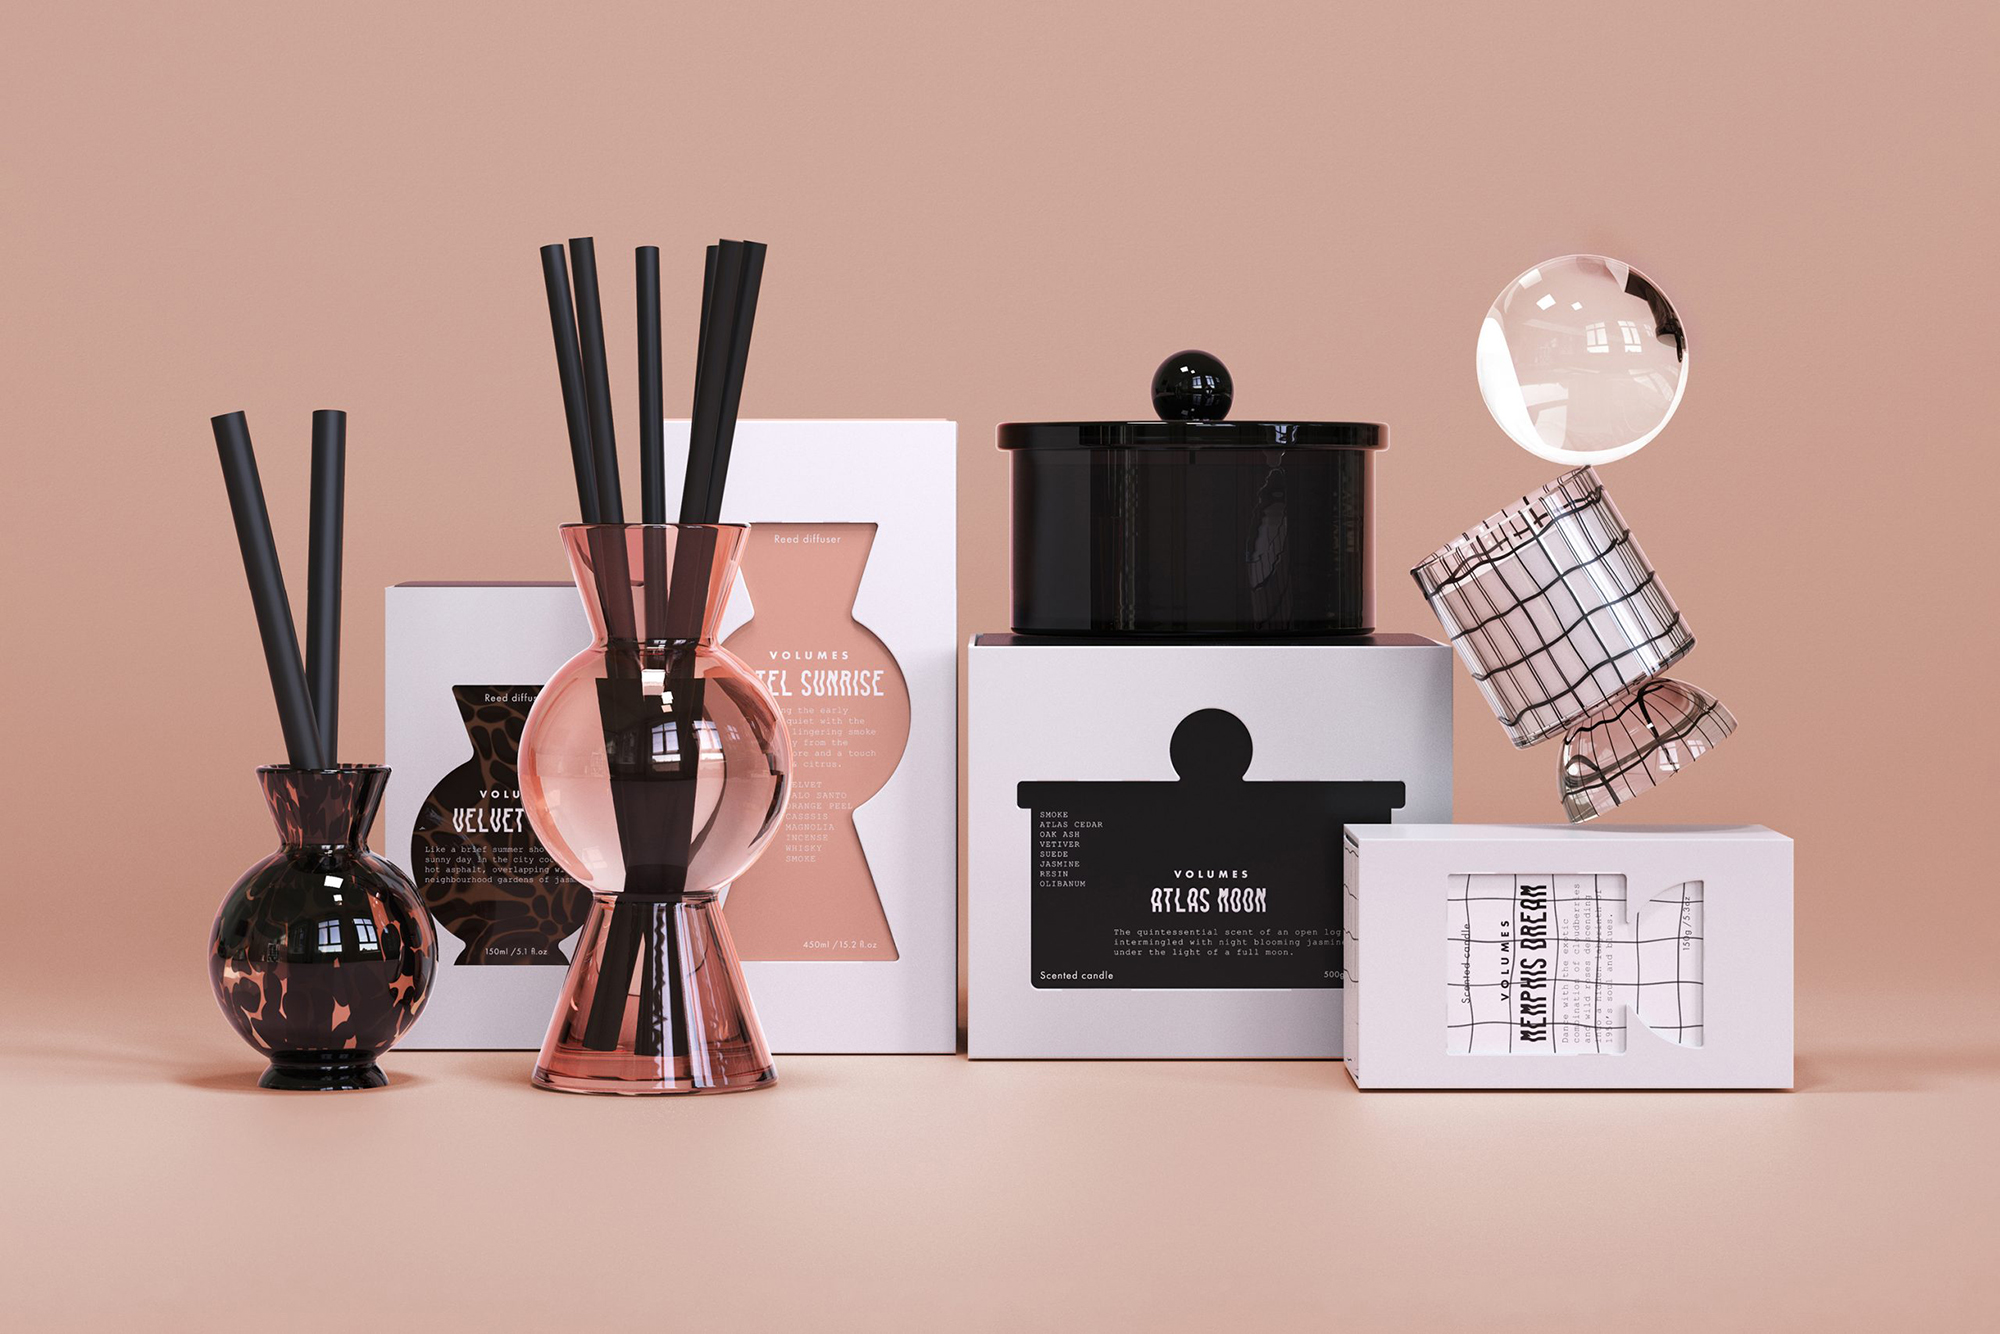 Sarah Johnston Creative Concept for Geometric Forms Intertwined with Rich smokey Aromas